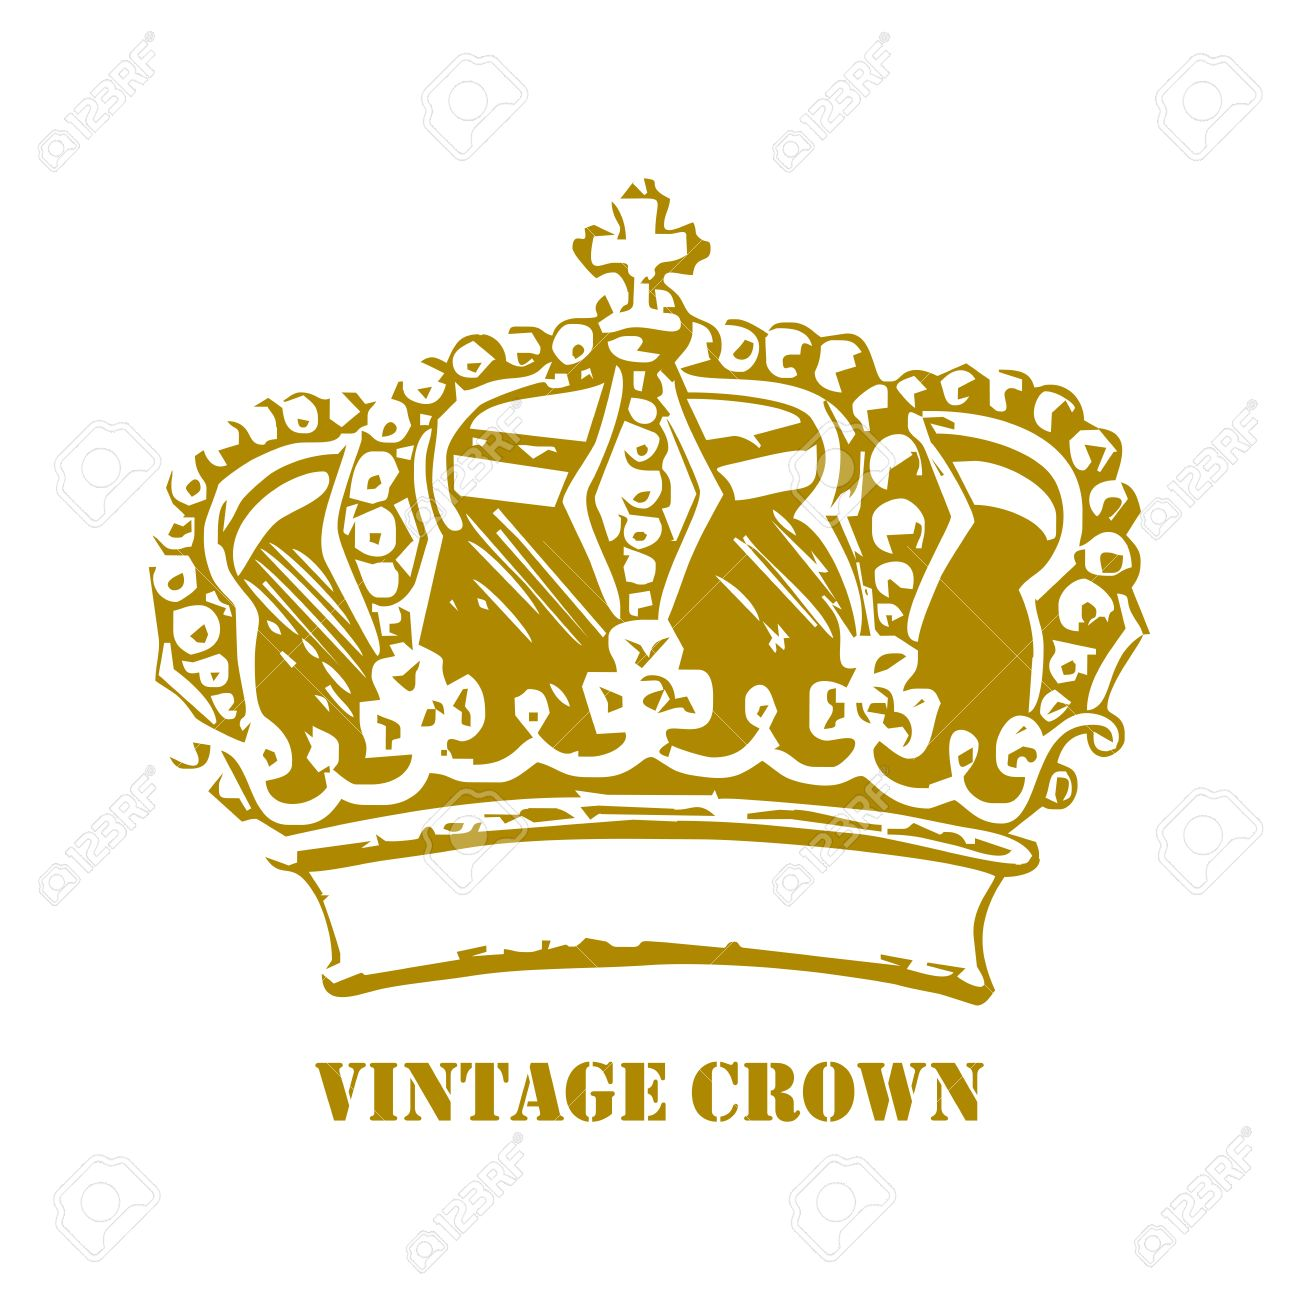 Crown Drawing Vector at GetDrawings.com   Free for personal use ...